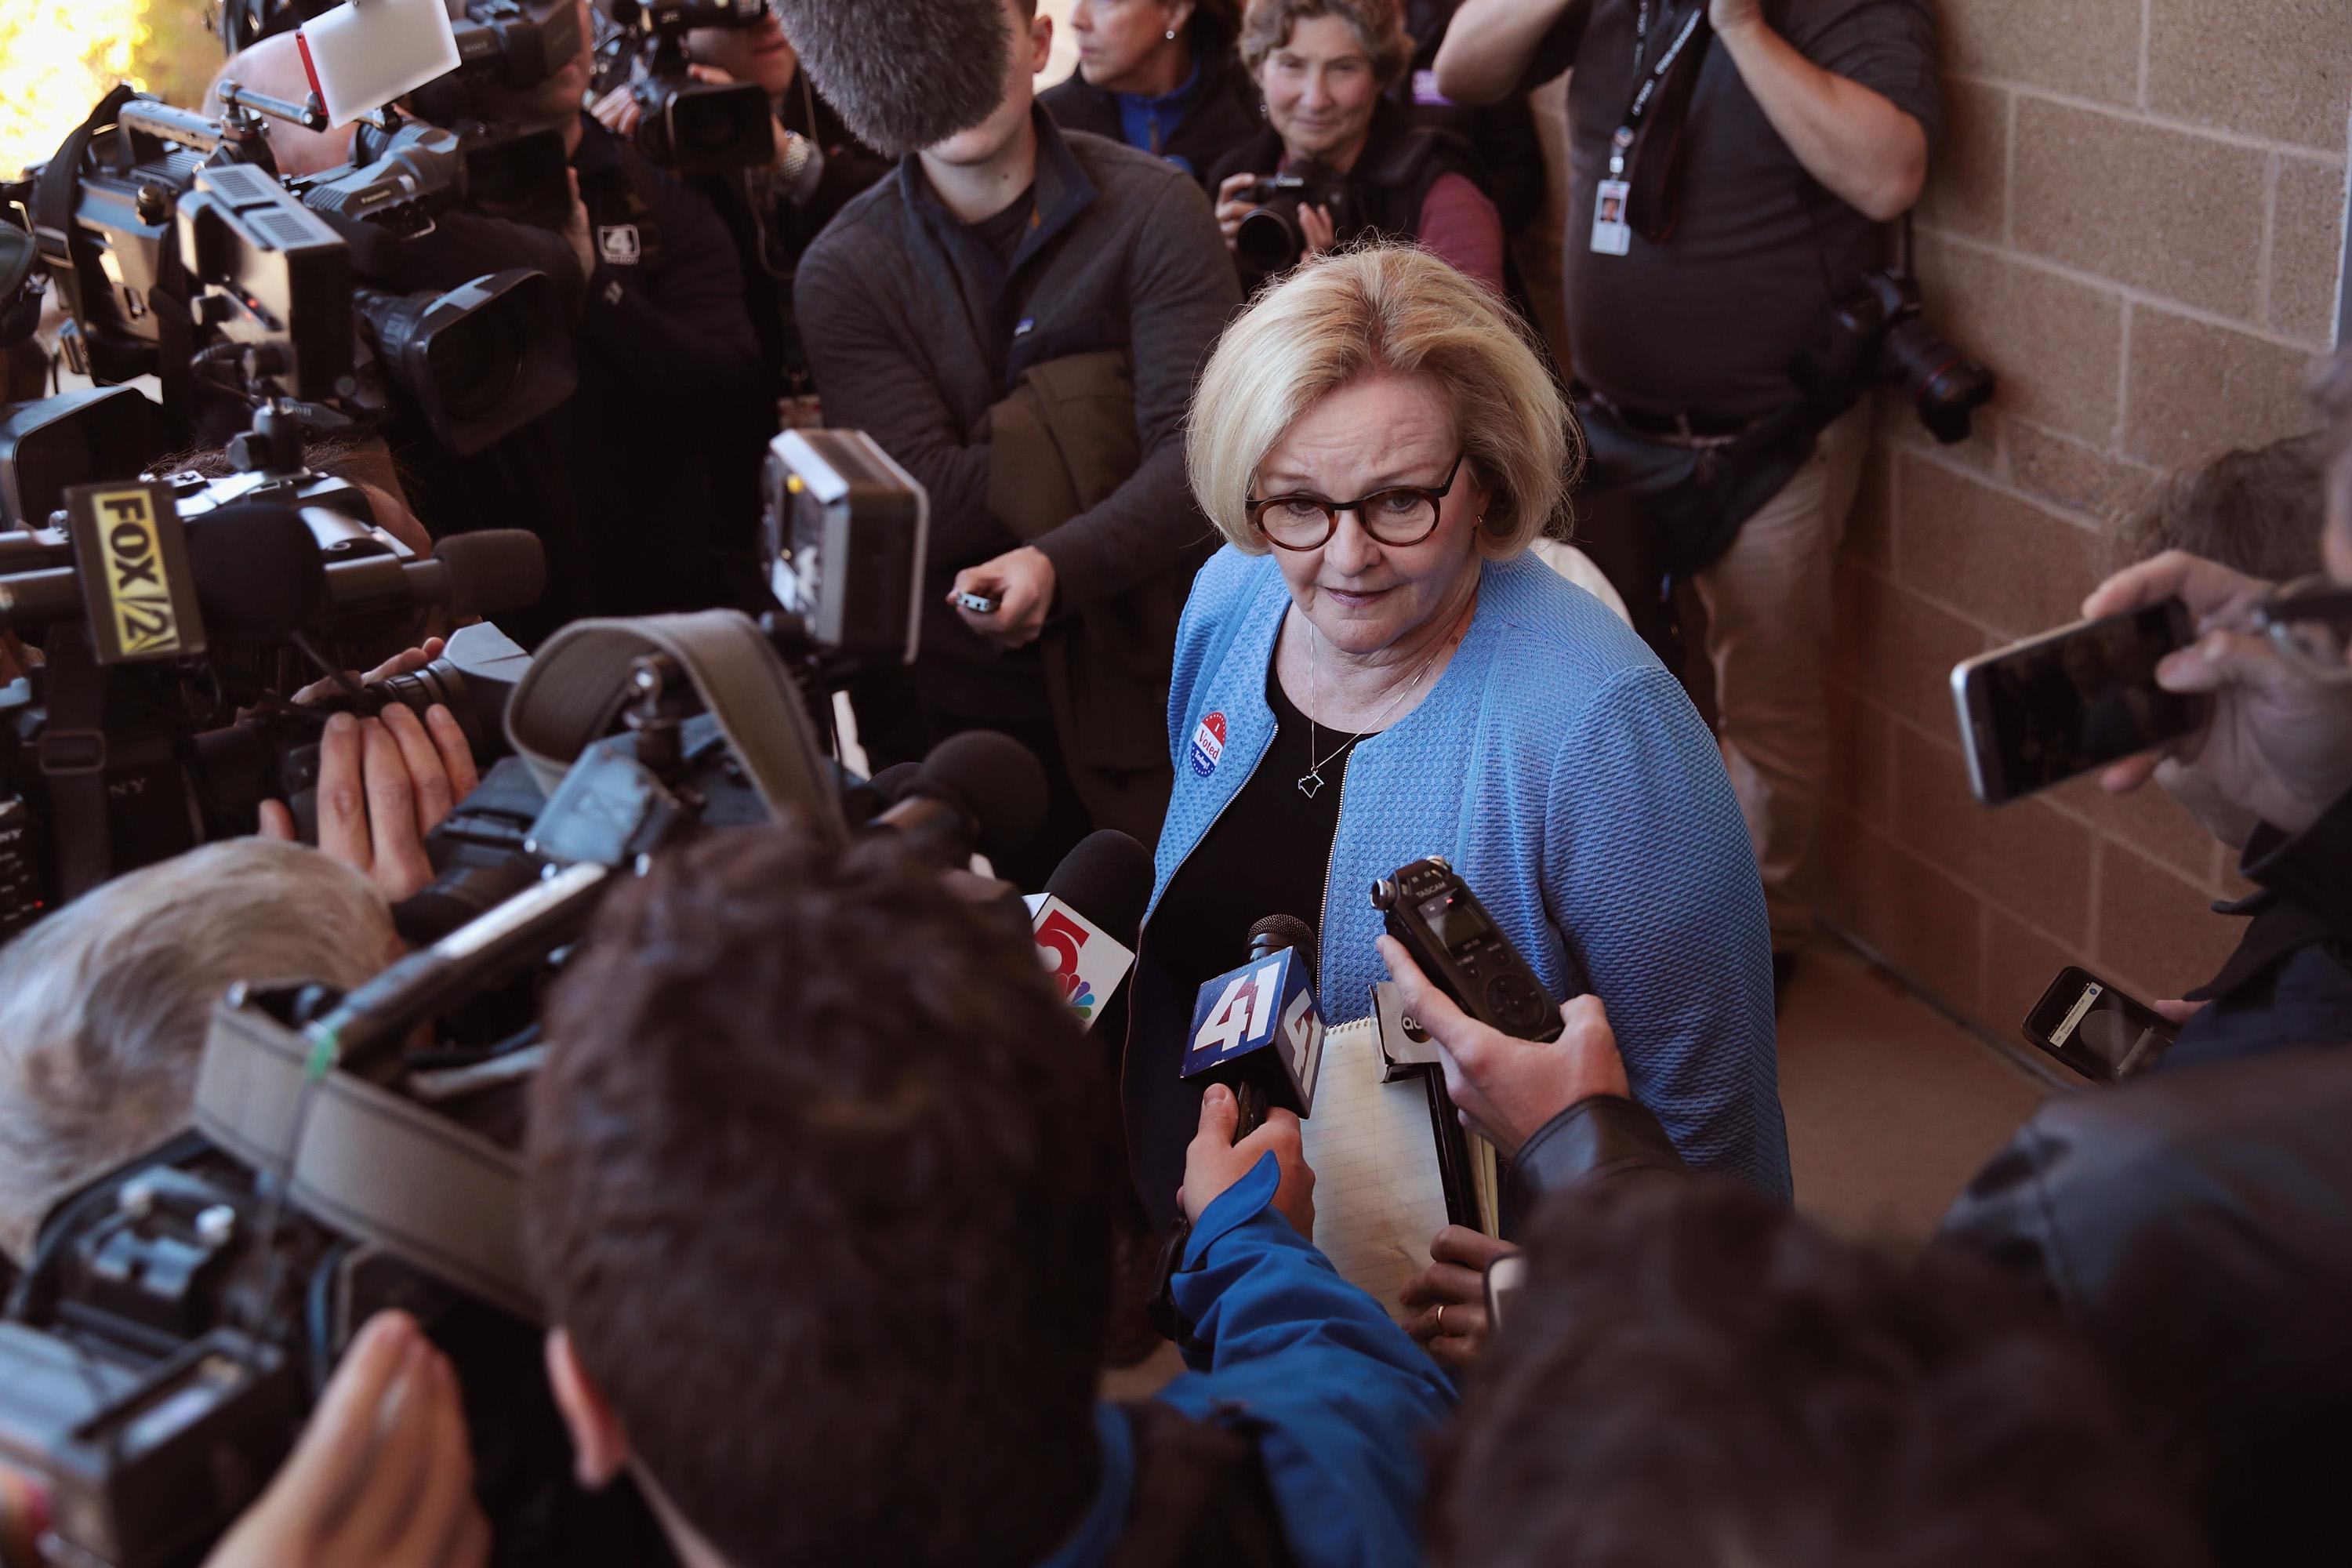 Senator Claire McCaskill (D-MO) speaks with reporters as she leaves the polling station after voting on November 6, 2018 in Kirkwood, Missouri.